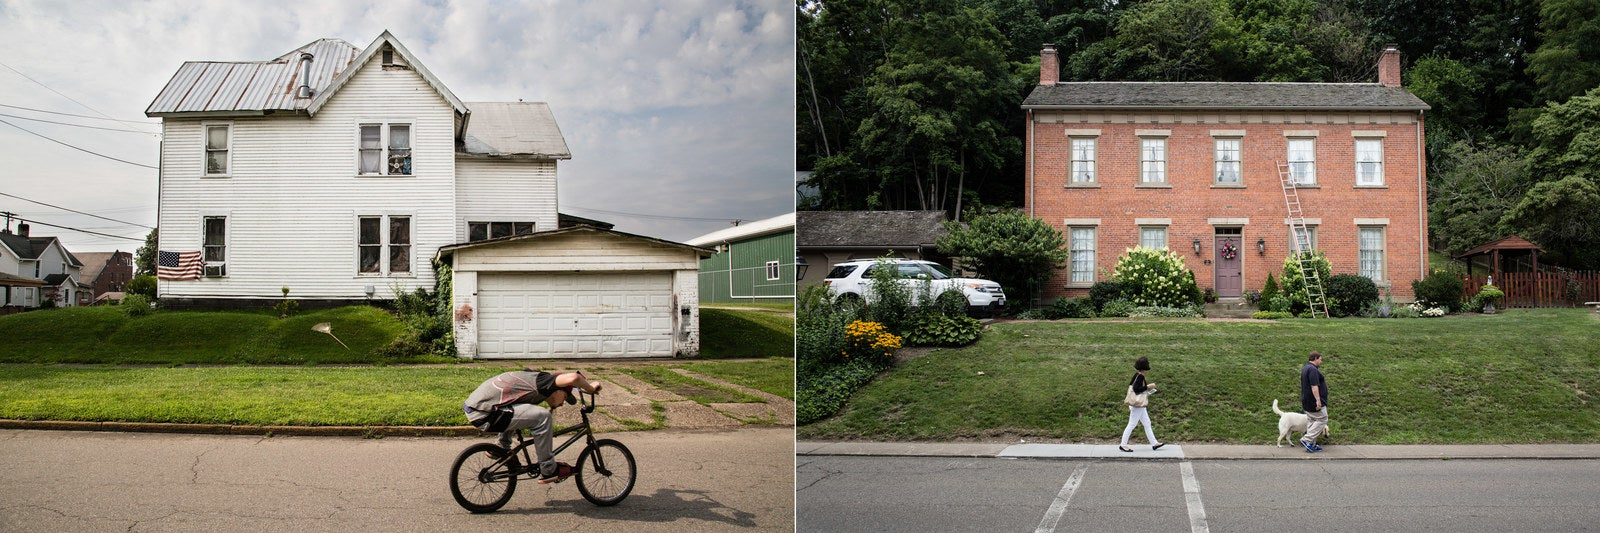 Left: A young man rides his bike past a house in Coshocton. Right: A restored house in Roscoe Village.